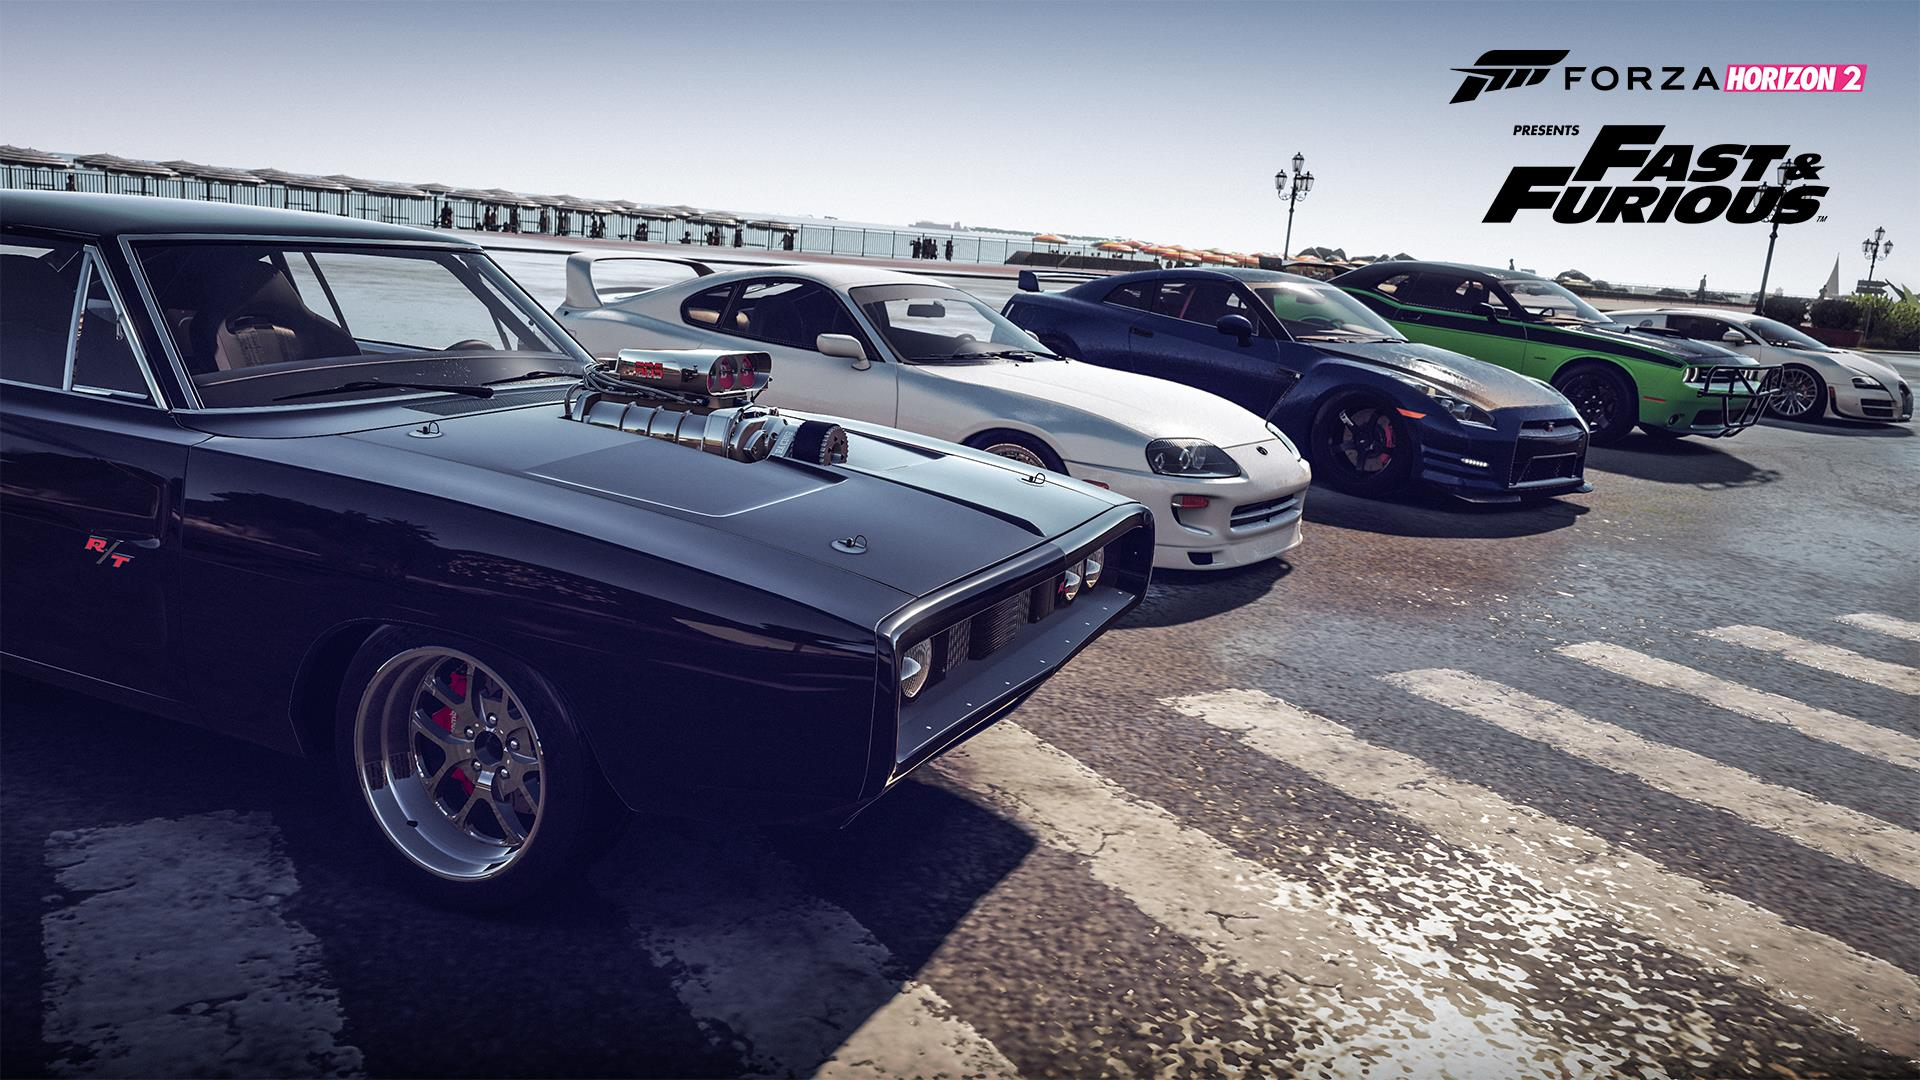 Fast & Furious expansion for Forza Horizon 2 is now available, for